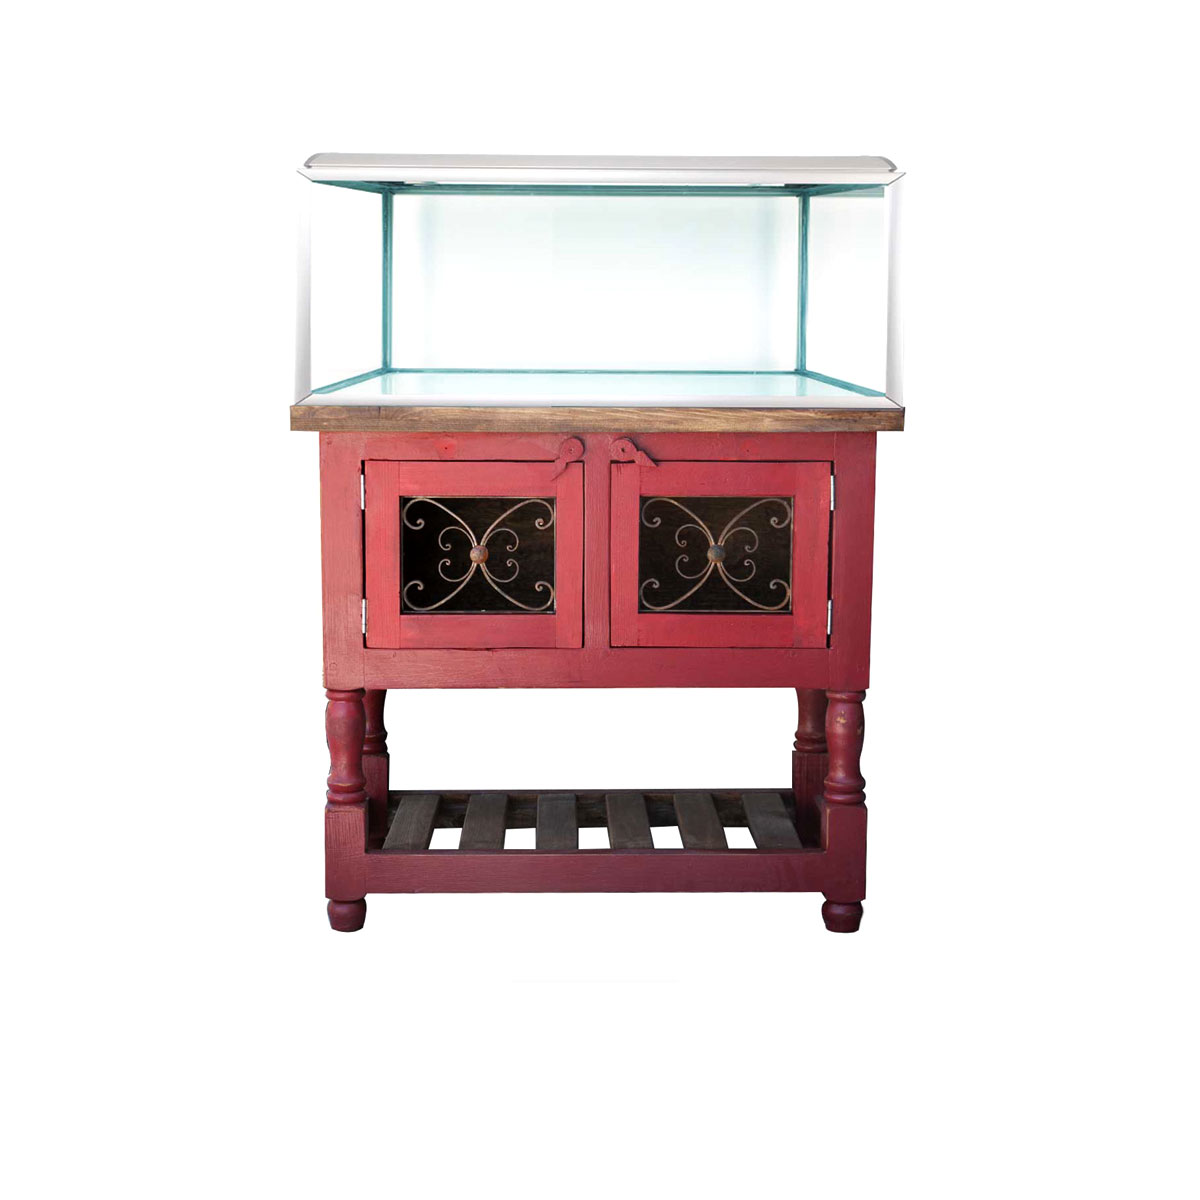 Purchase Rose Aquarium Stand Online | Hand Crafted Small Fish Tank ...